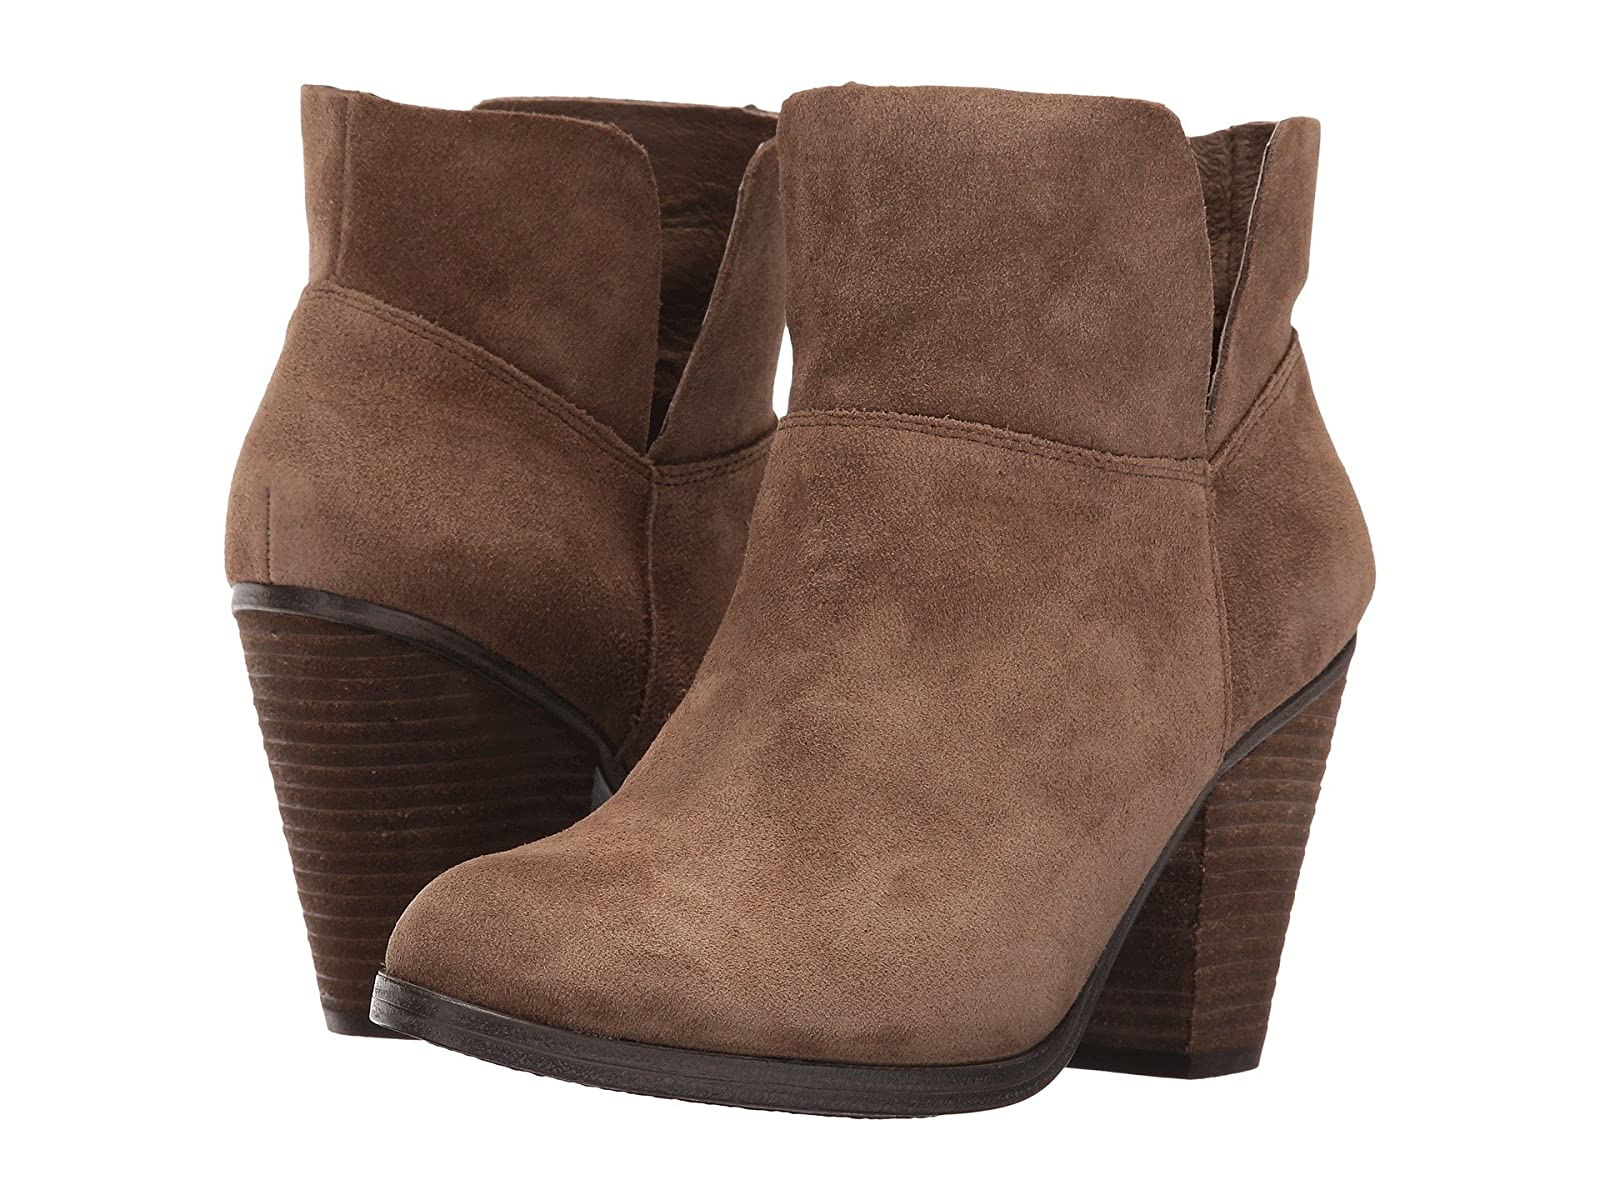 Vince Camuto HelynCheap and distinctive eye-catching shoes